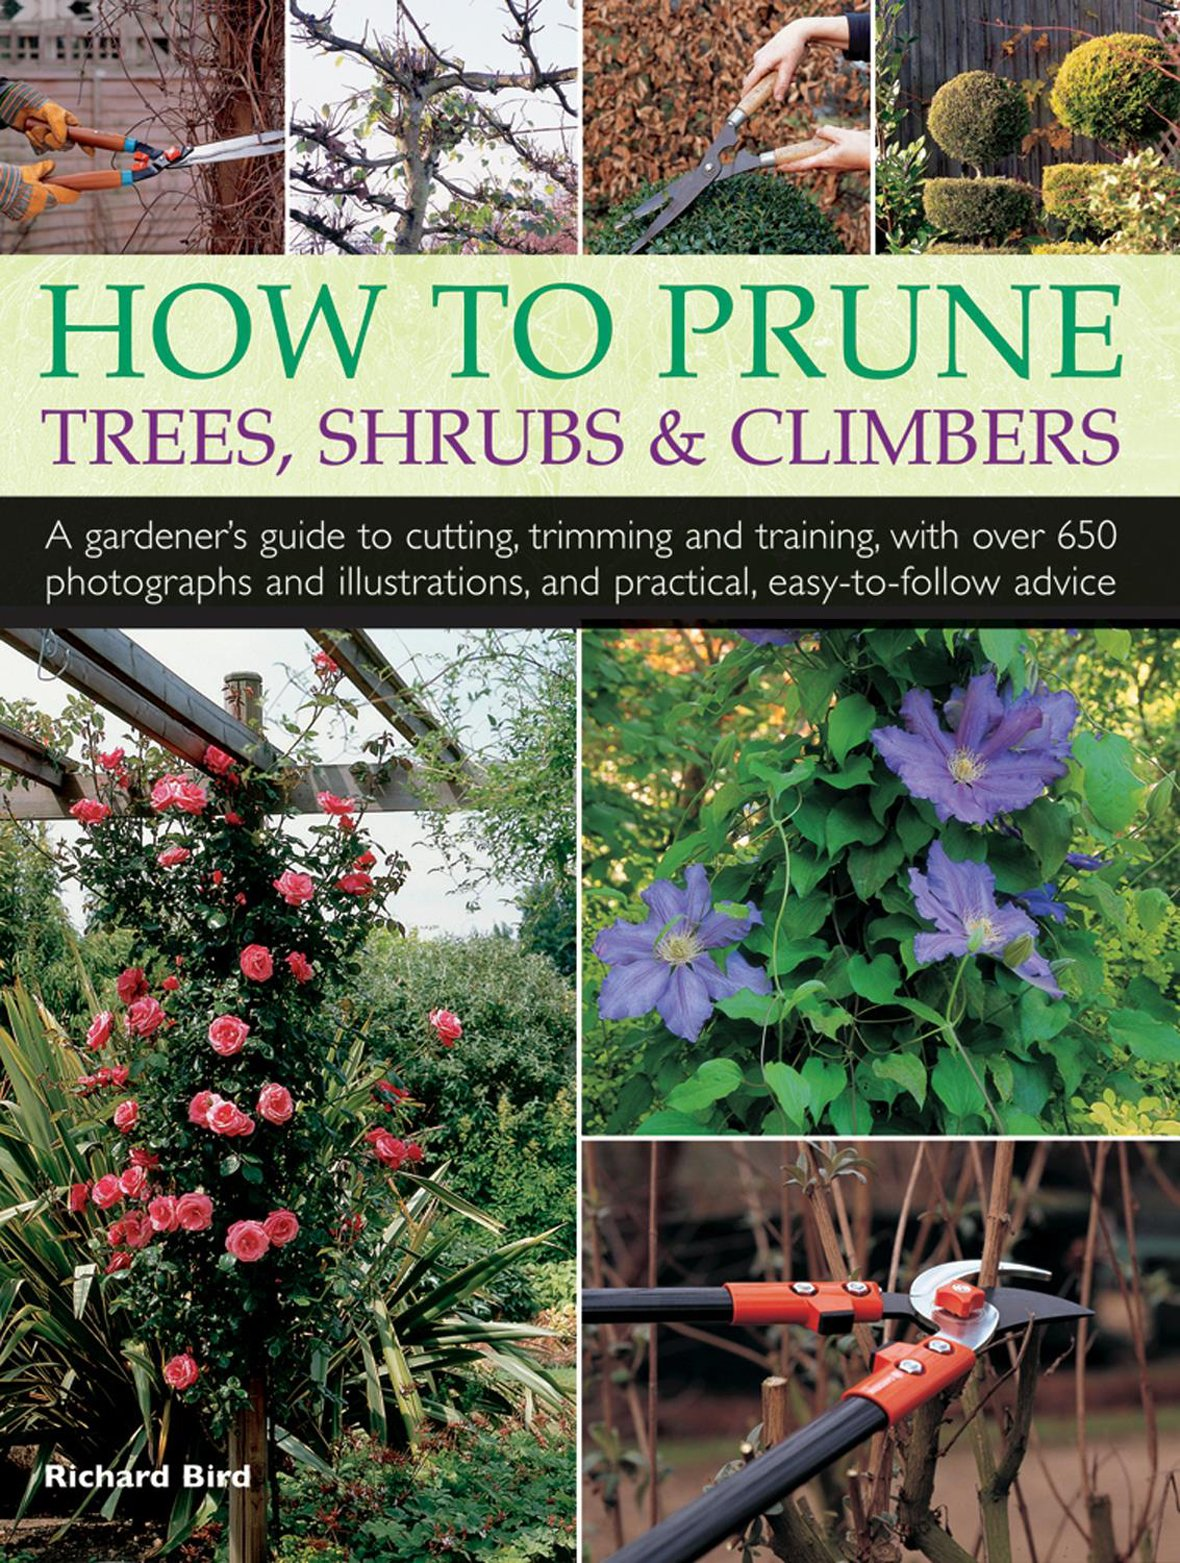 How to Prune Trees, Shrubs & Climbers: A Gardener'S Guide To Cutting, Trimming And Training, With Over 650 Photographs And Illustrations, And Practical, Easy-To-Follow Advice